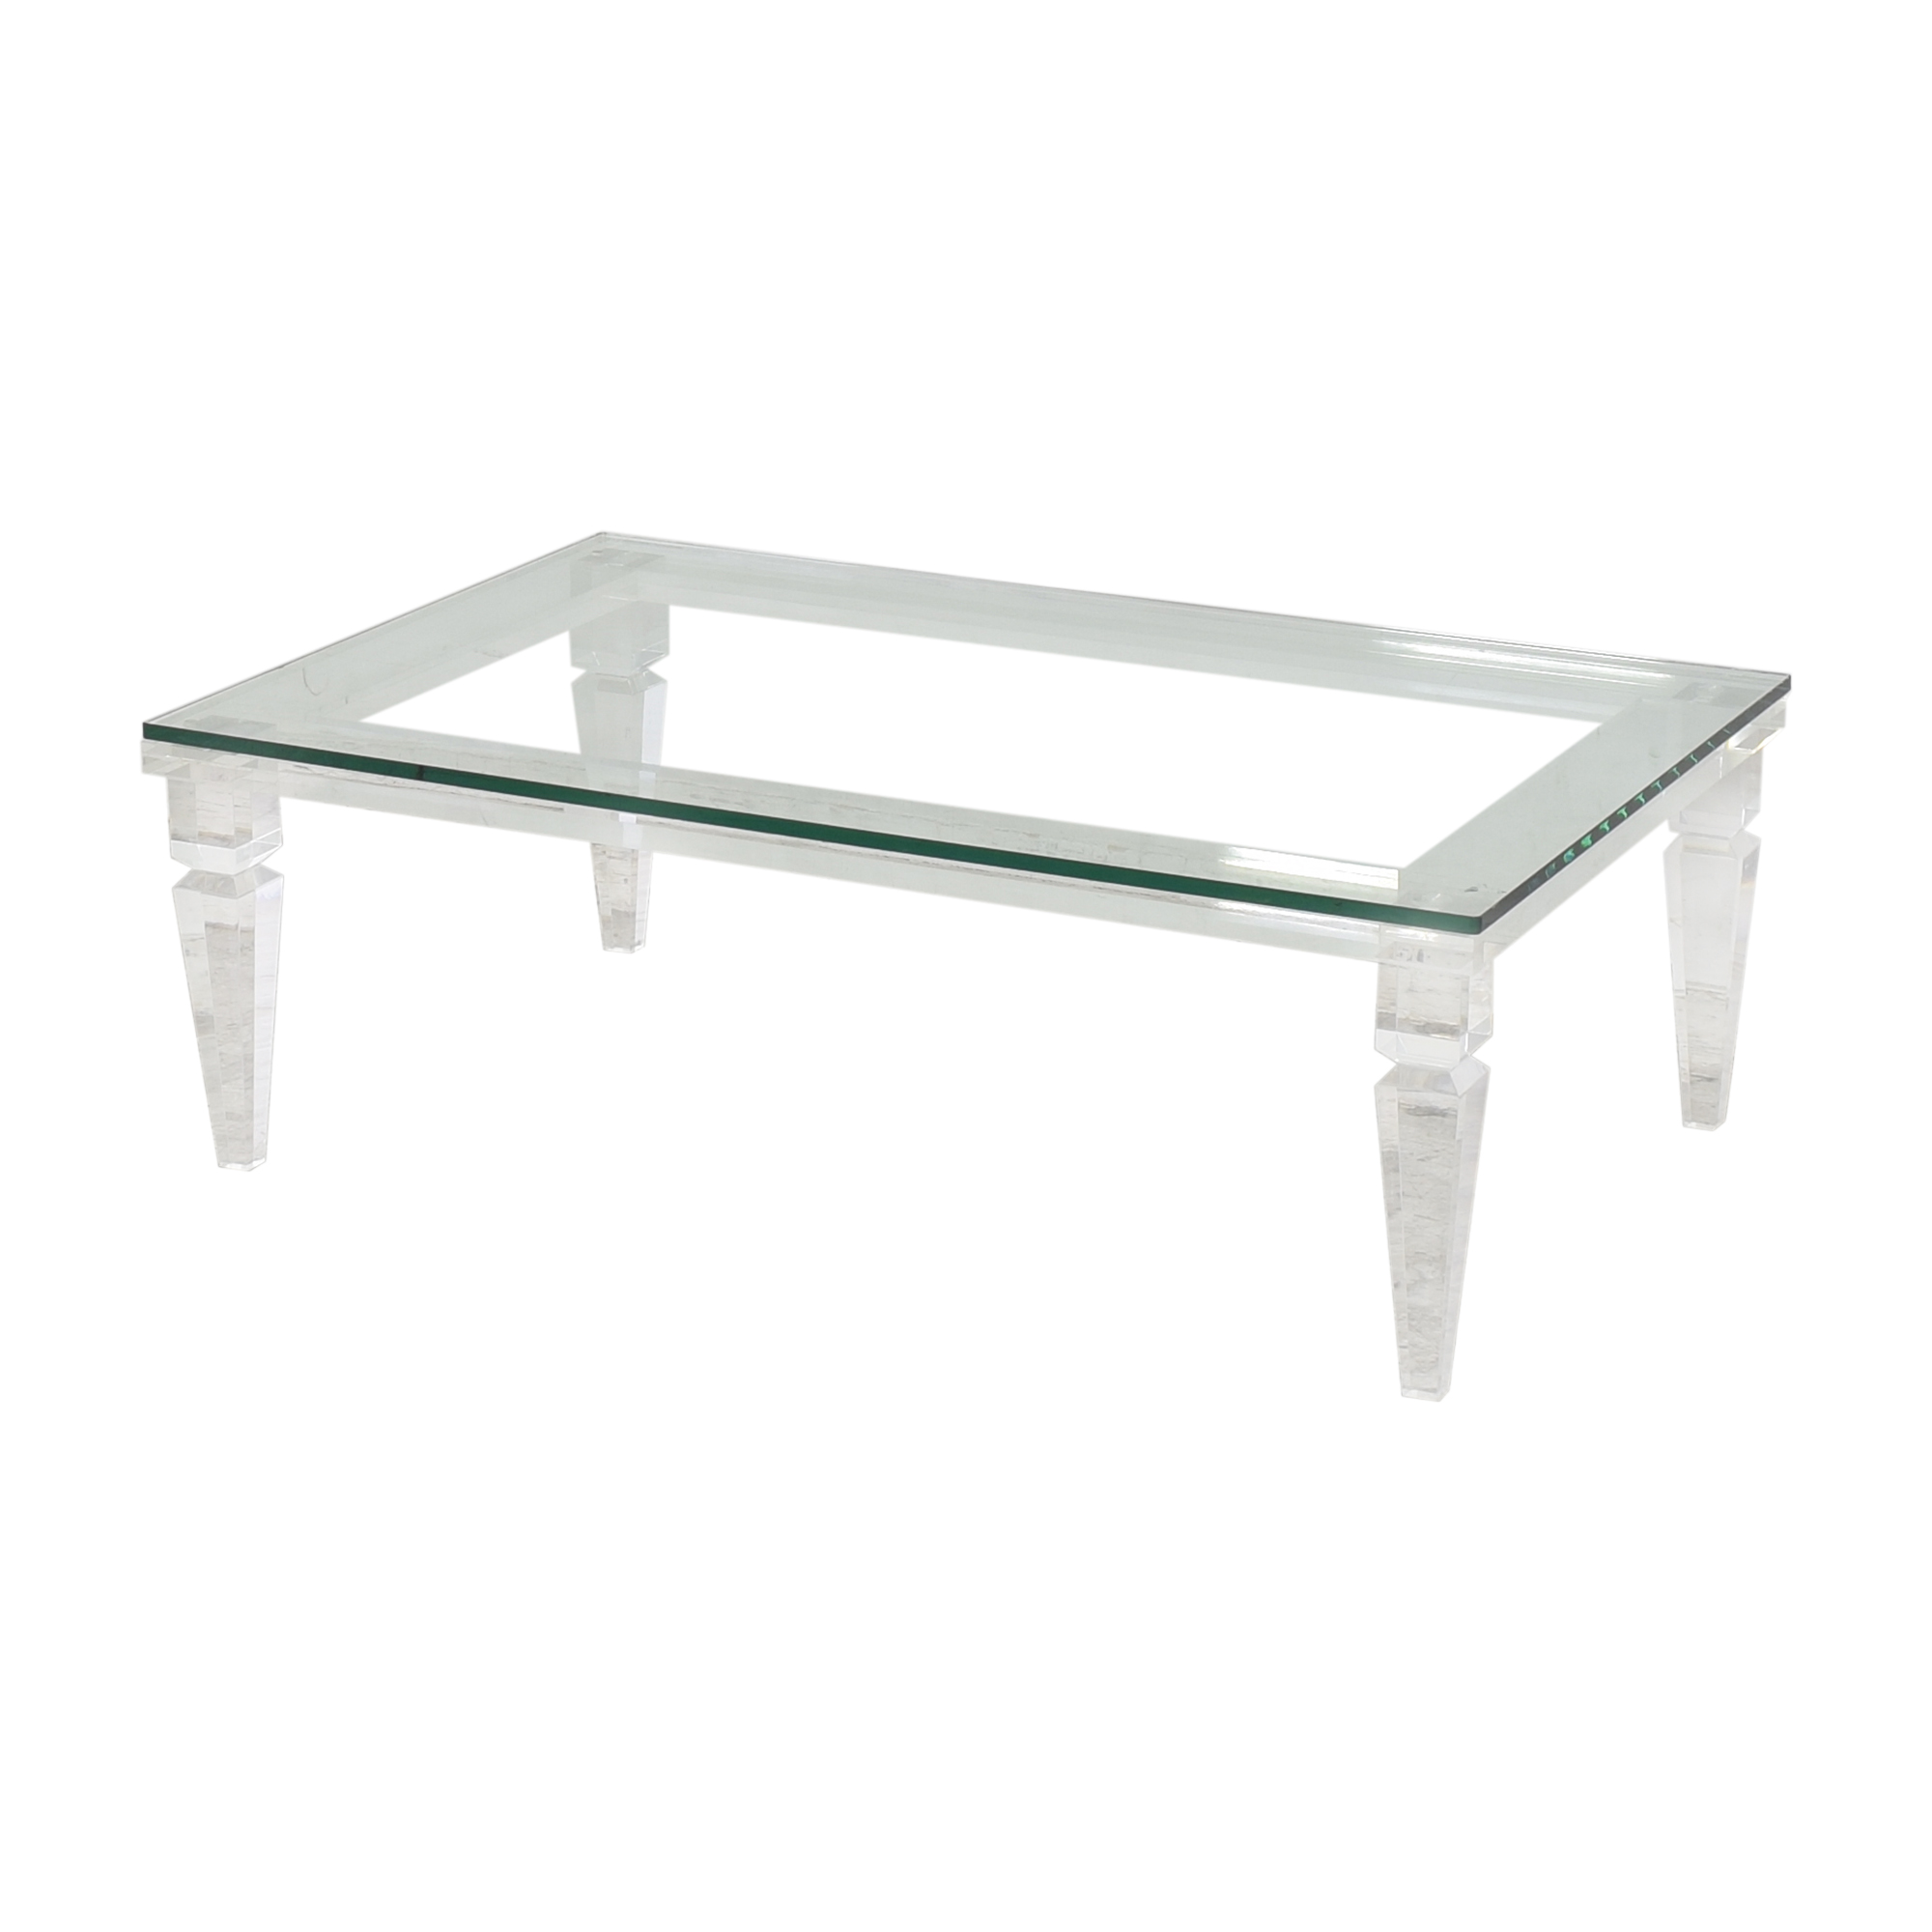 Interlude Home Interlude Home Savannah Rectangular Cocktail Table for sale